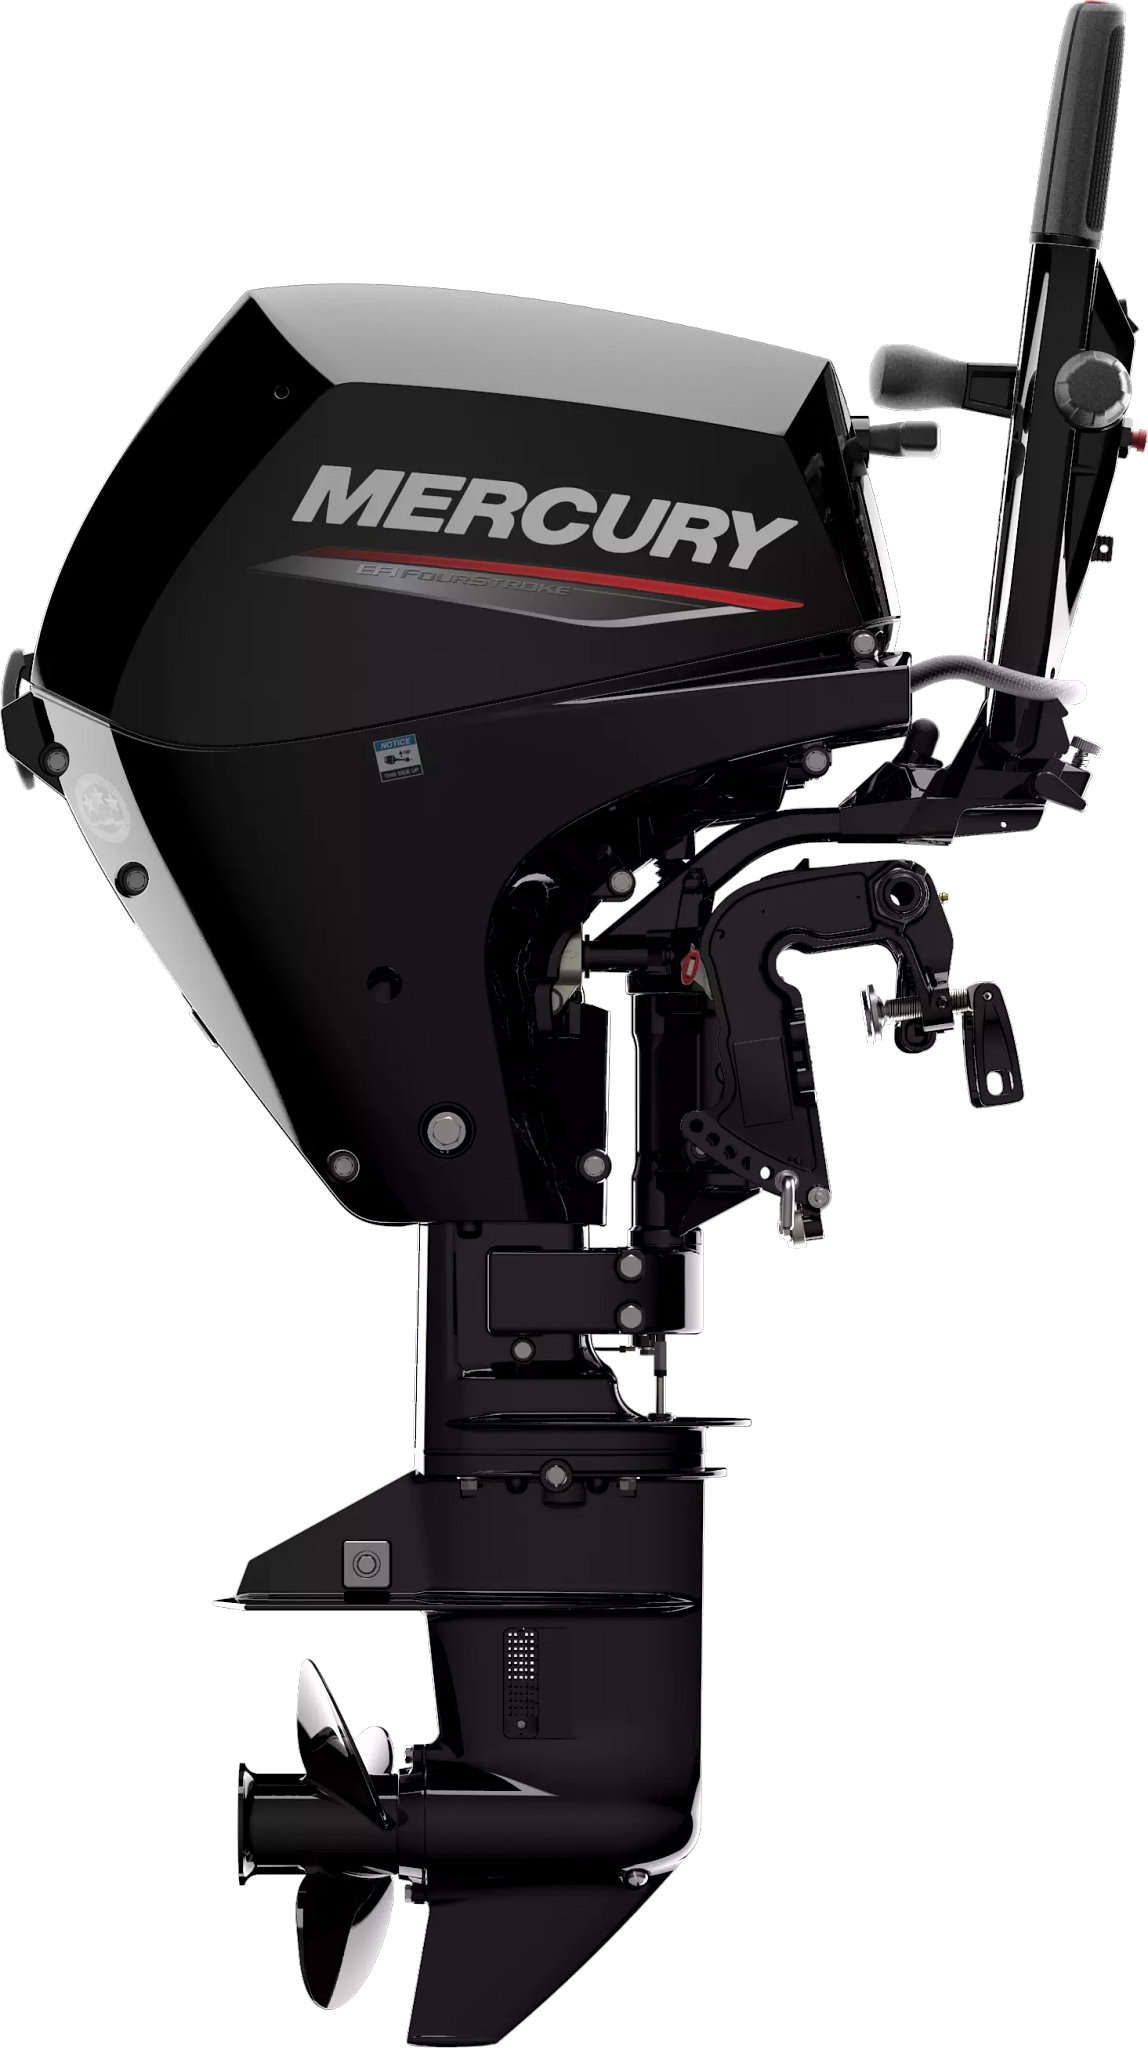 Mercury 10 FourStroke Outboard Engine - 10 HP